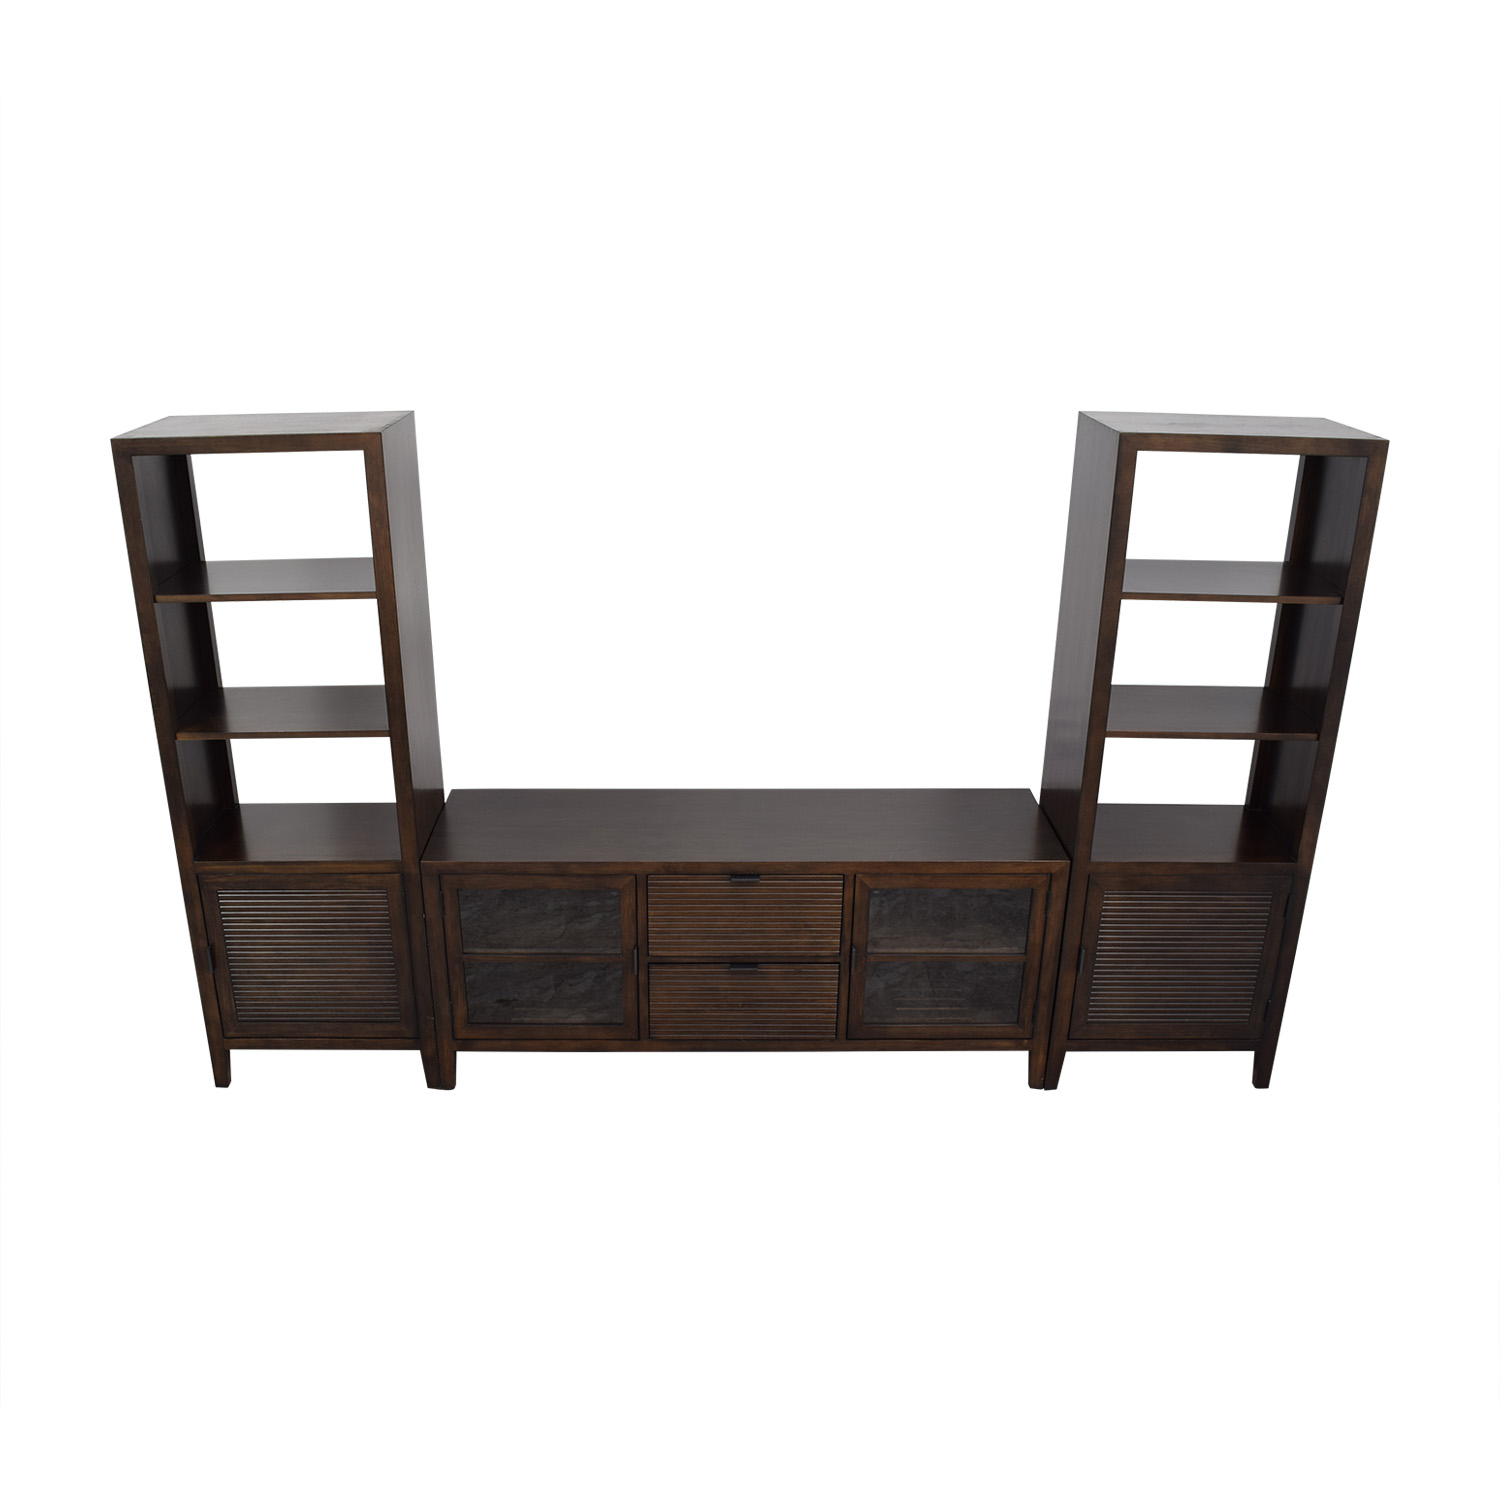 Crate & Barrel Crate & Barrel Media Console with Two Media Towers Storage